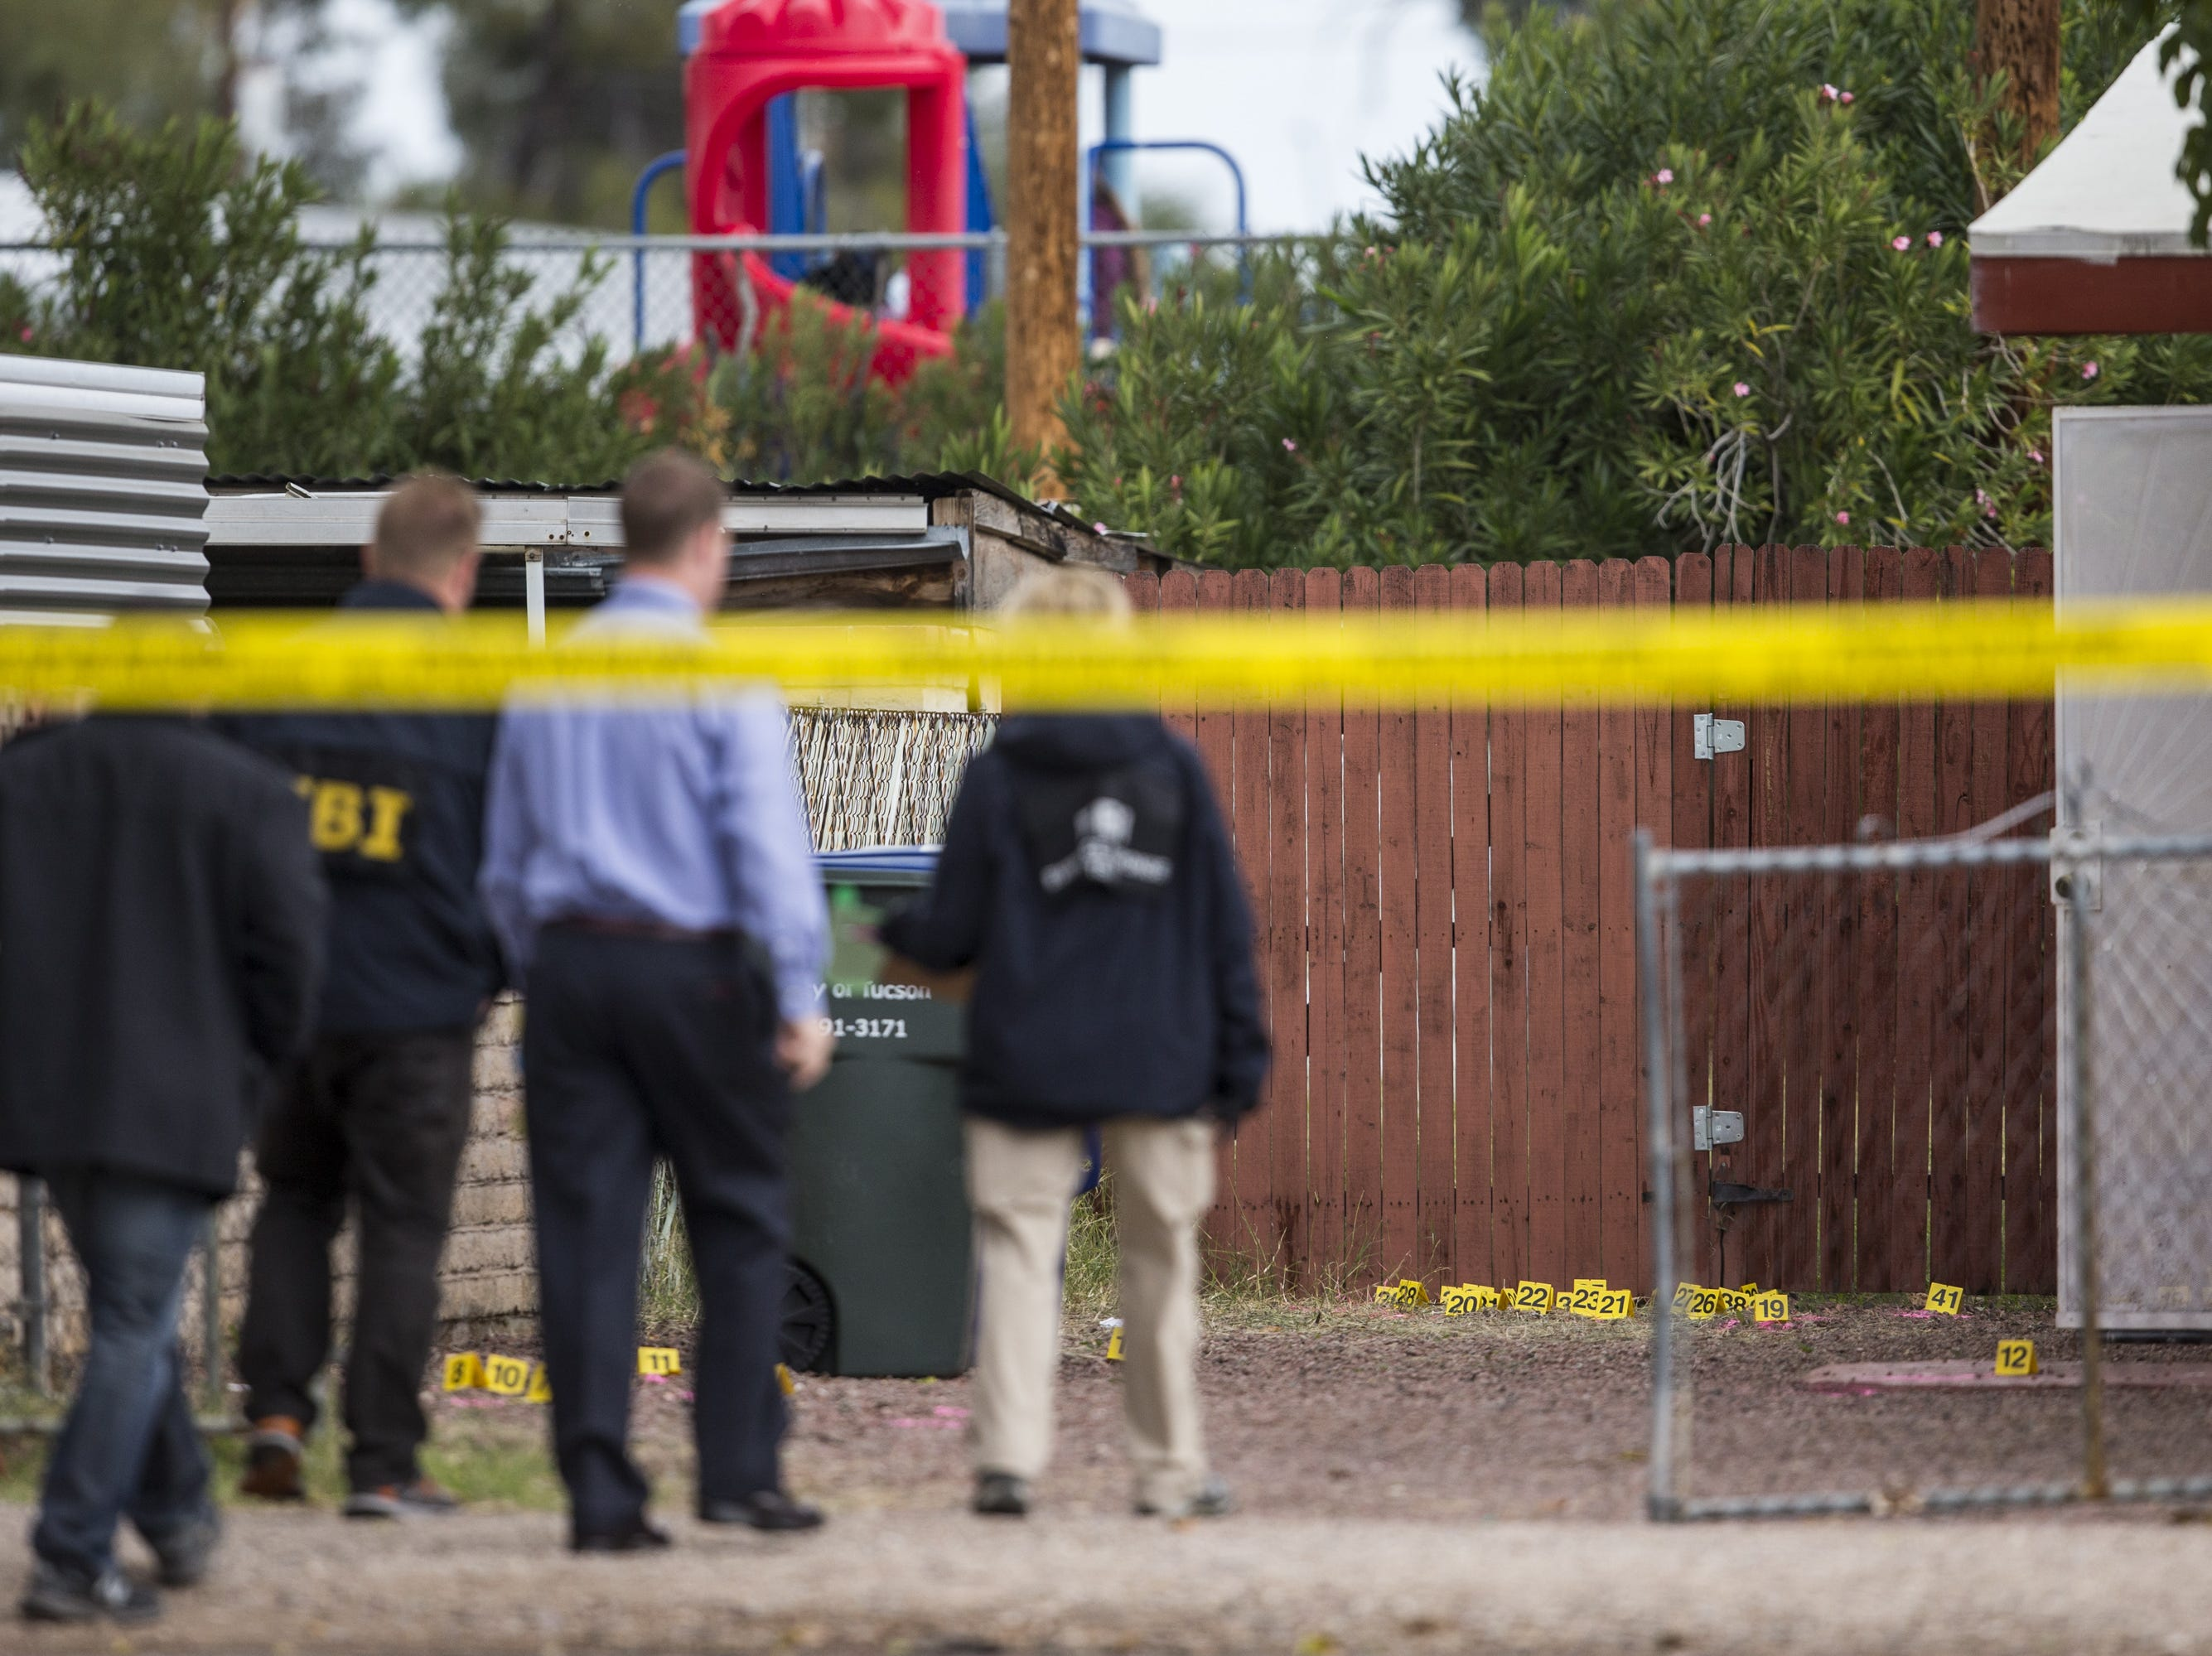 Evidence markers are seen on the ground as law enforcement investigates the scene of a fatal shooting of a deputy U.S. marshal on Friday, Nov. 30, 2018, in Tucson, Ariz. Law enforcement said Deputy U.S. Marshal Chase White was fatally shot by a suspect, Ryan Schlesinger, 26, while he was serving a fugitive warrant at a house on Thursday.